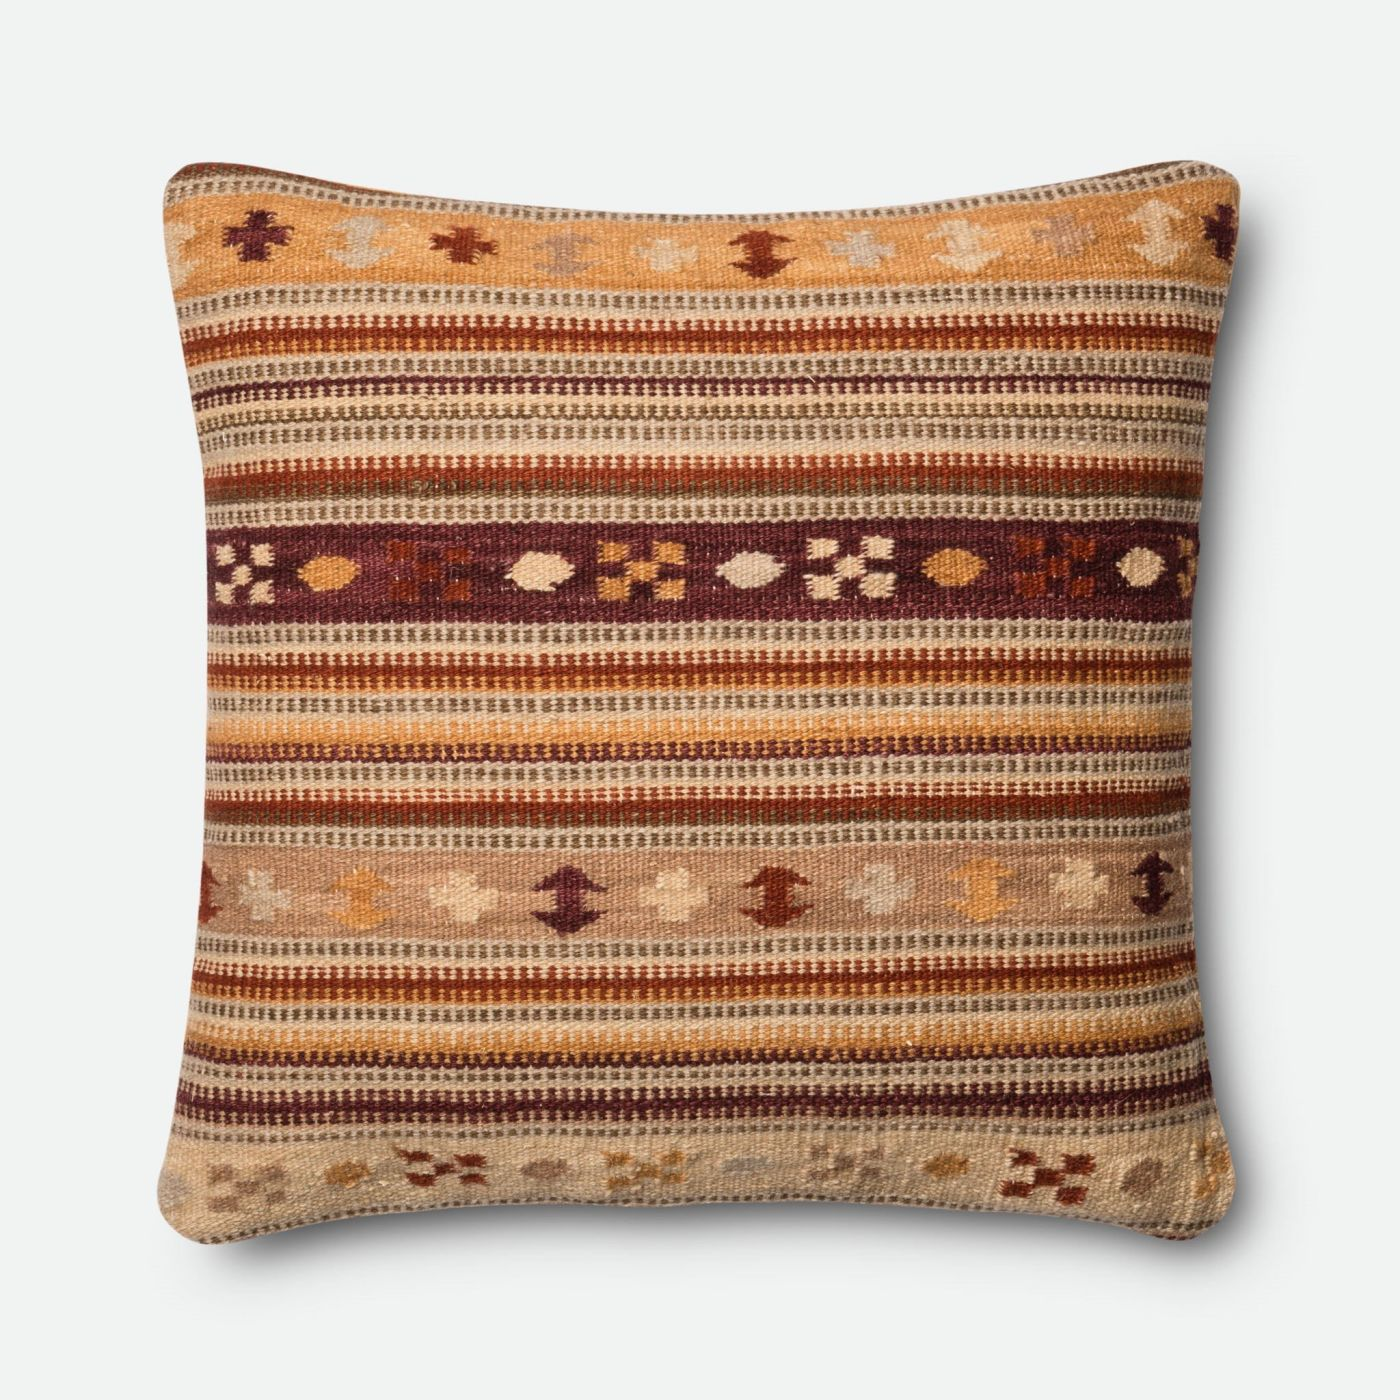 Loloi Rugs Loloi Rust / Gold Decorative Throw Pillow (P0395) DSETP0395RUGOPIL3. Only $119.00 at ...